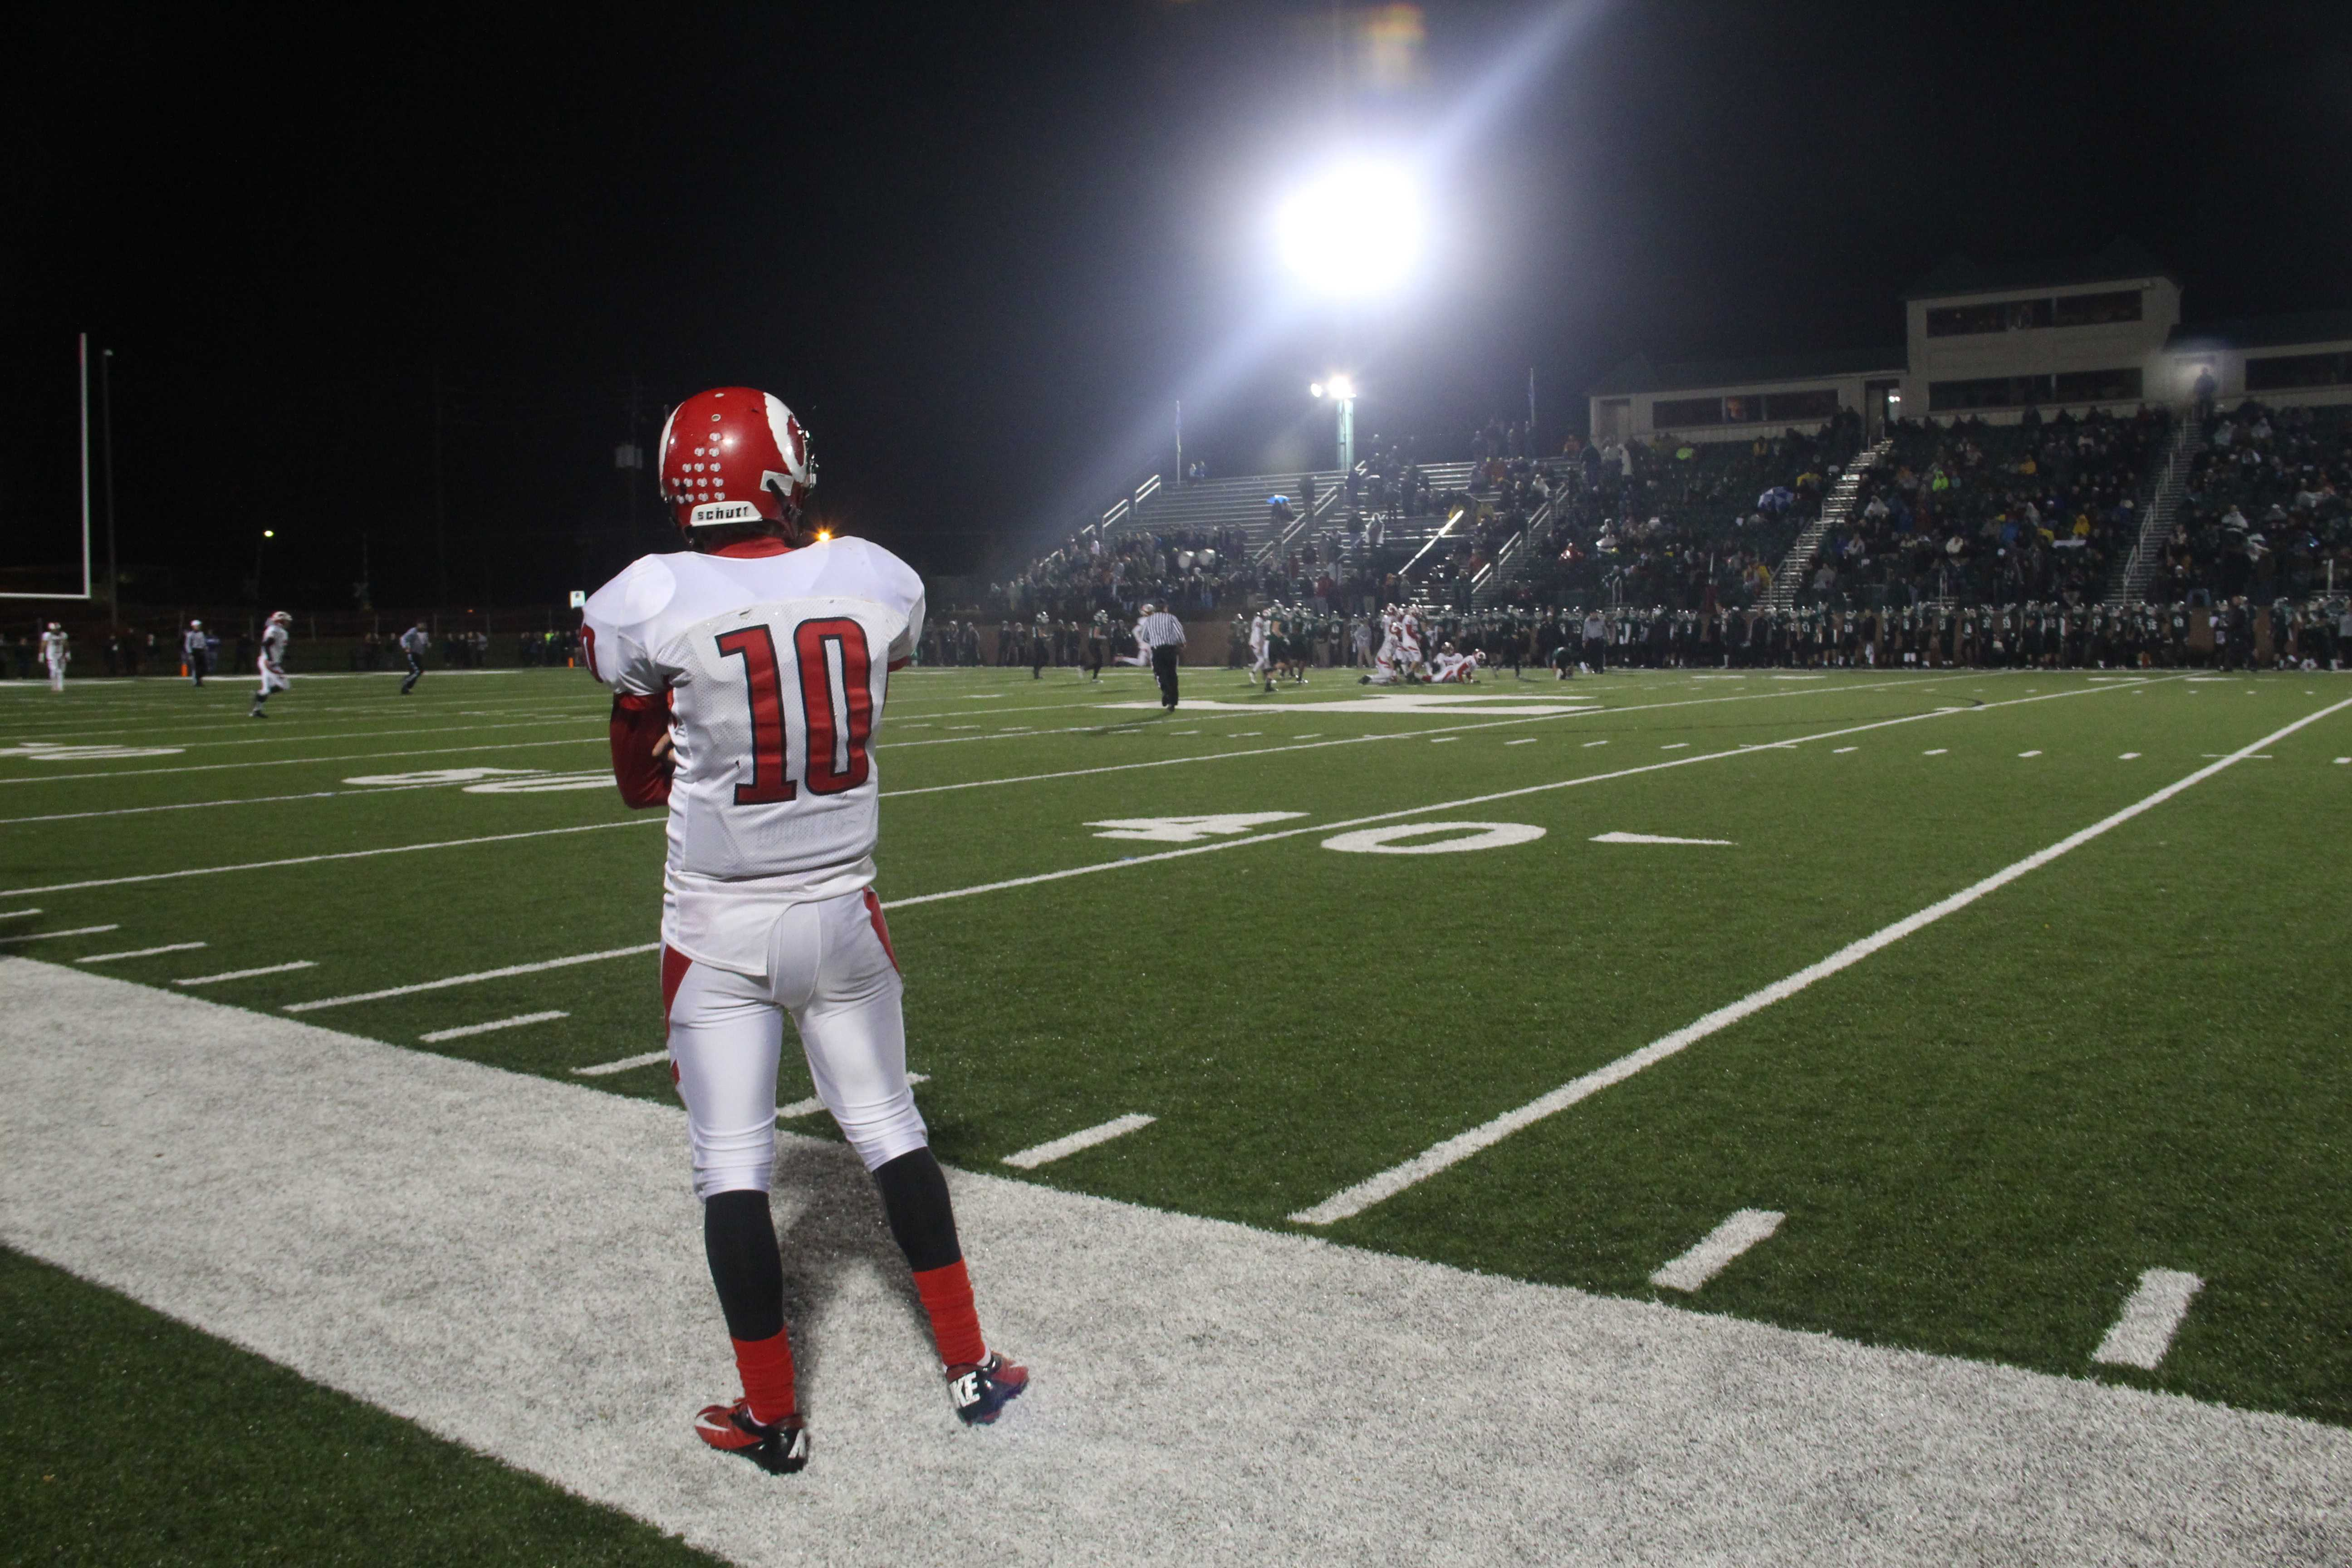 Mason Motley (#10) stands on the sidelines taking a break during the 3rd quarter.